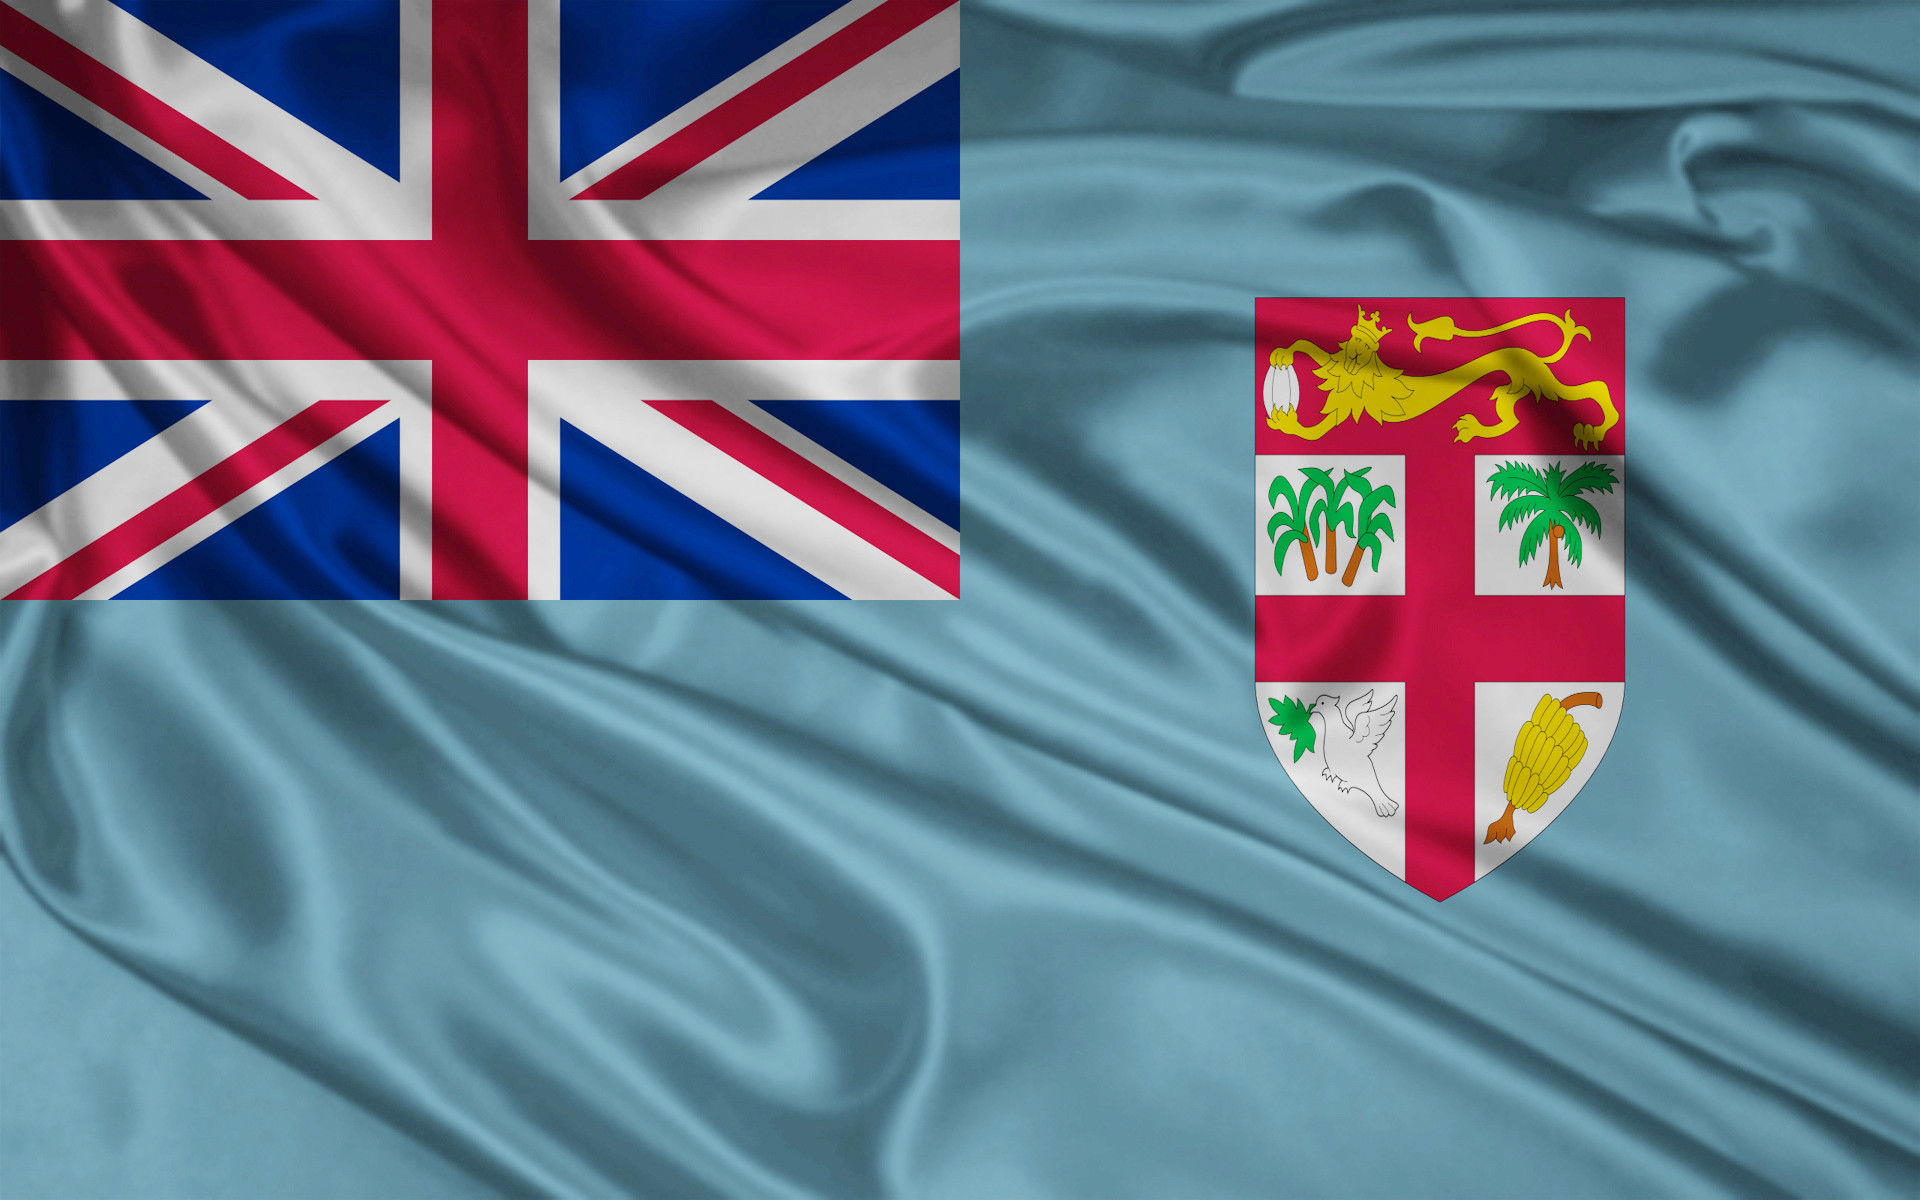 Subcategory: Country flags wallpapers